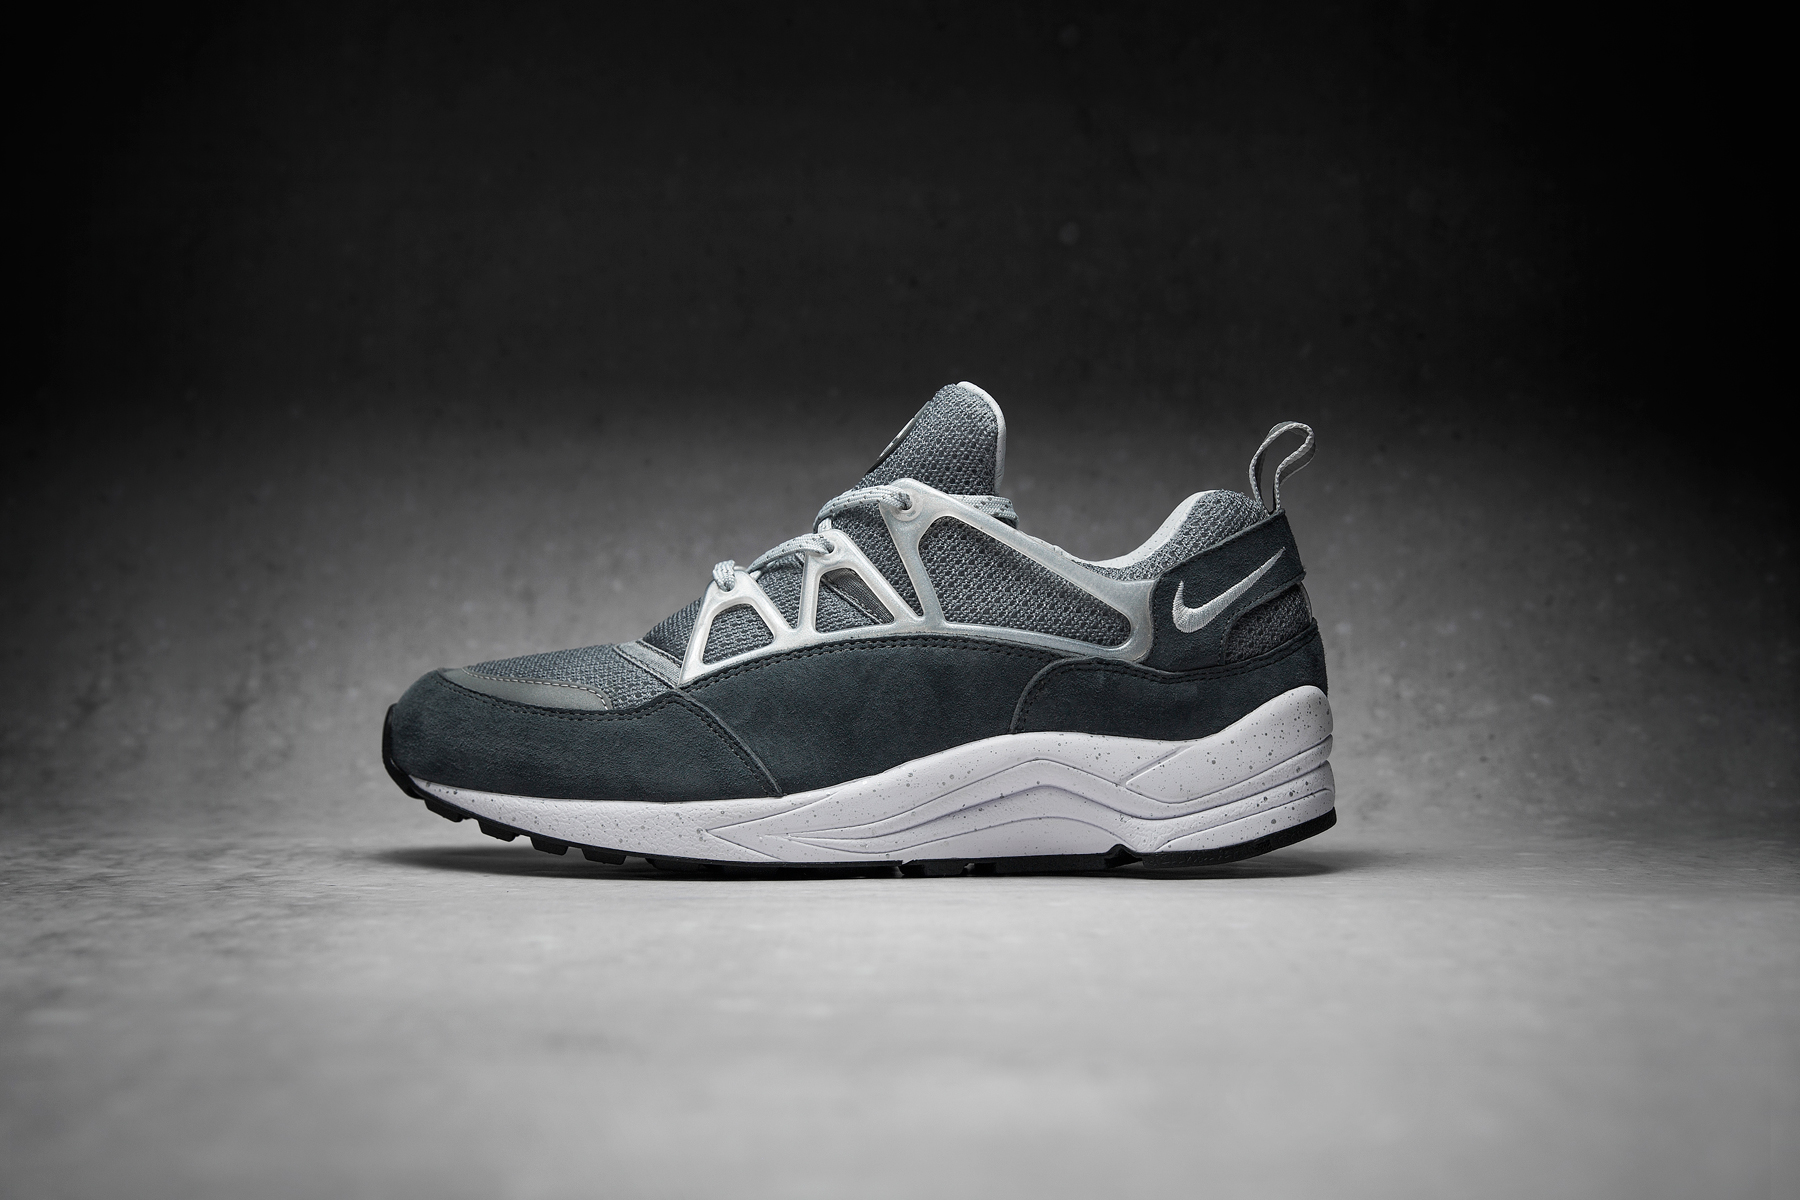 footpatrol x nike air huarache light concrete hypebeast. Black Bedroom Furniture Sets. Home Design Ideas